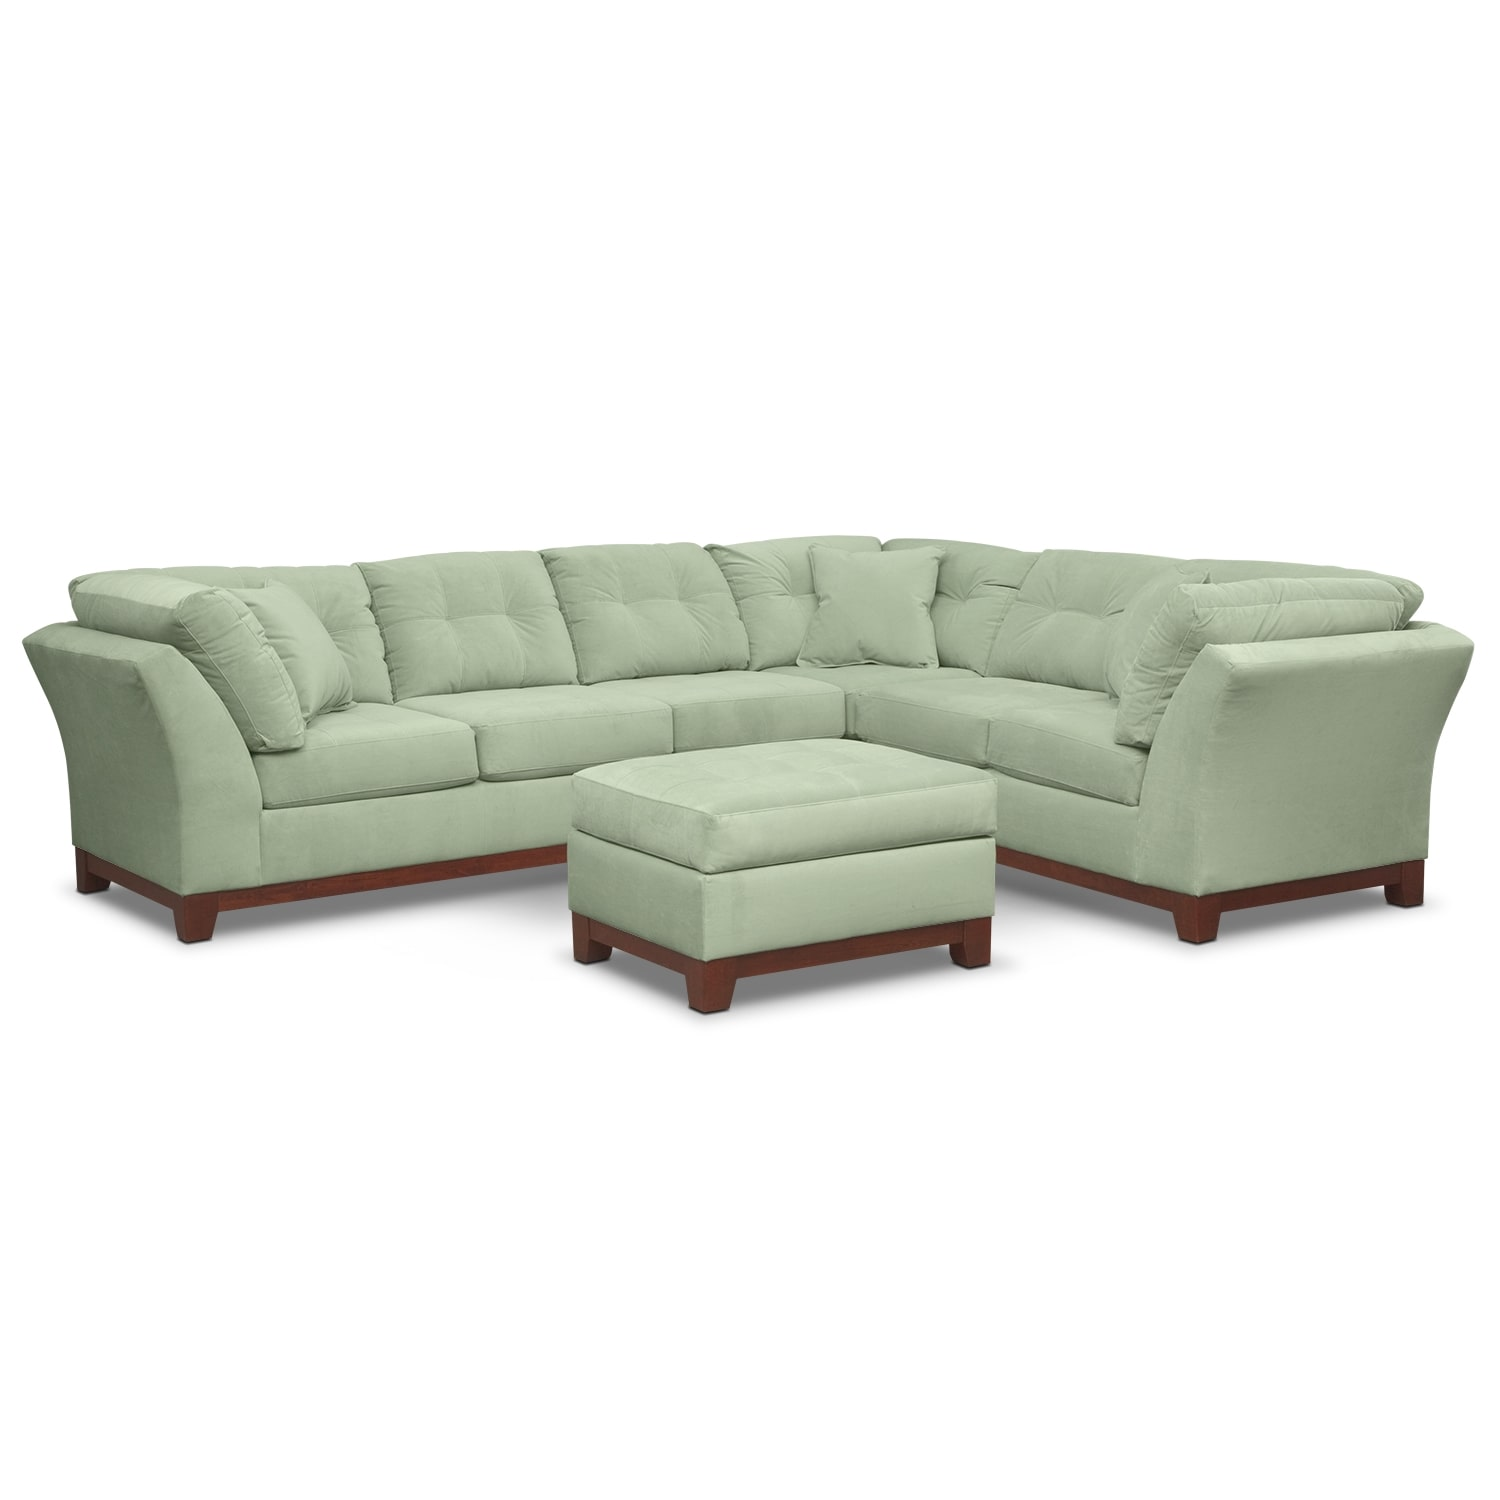 Living Room Furniture - Solace 3-Piece Sectional with Left-Facing Sofa and Ottoman Set - Spa